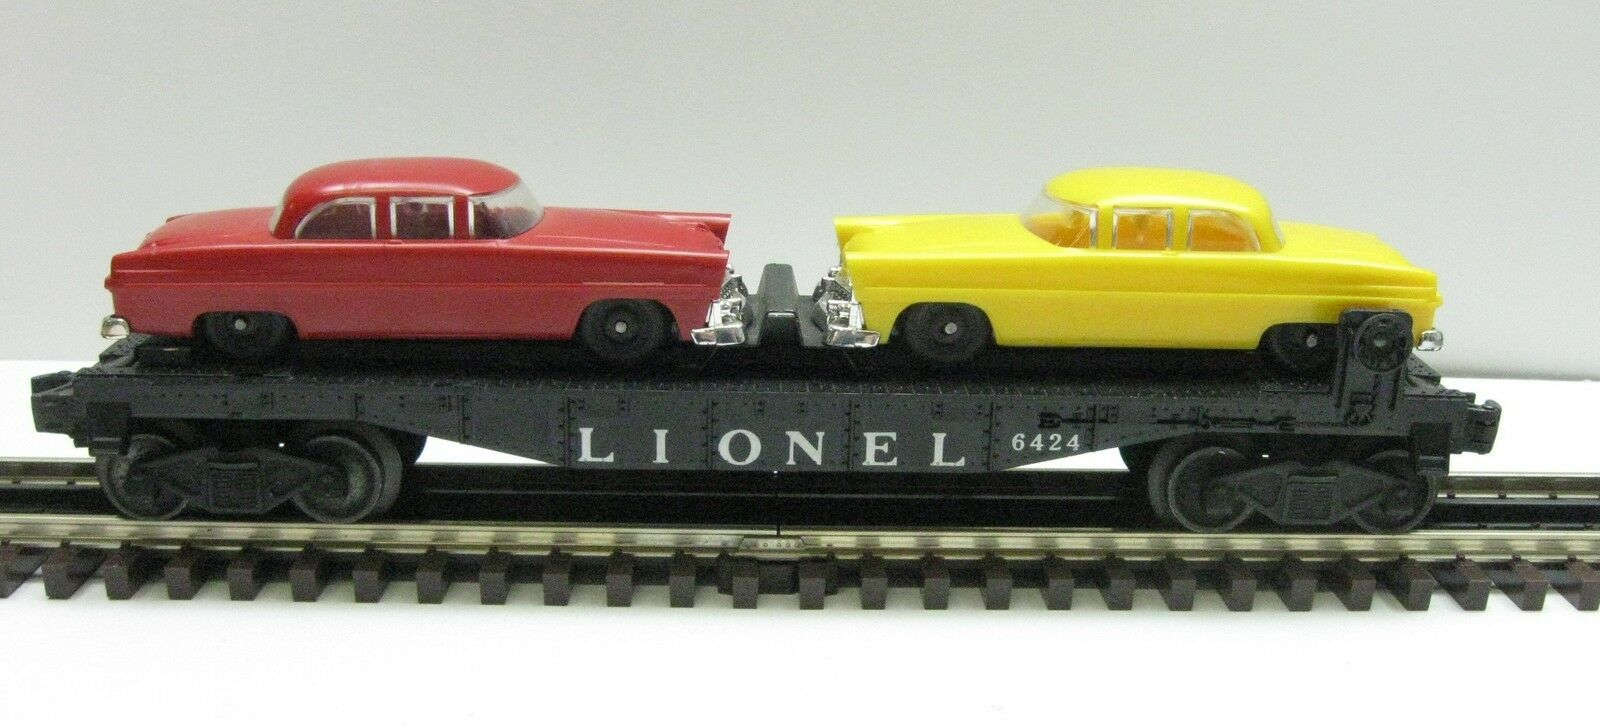 Lionel 6424 O Gauge Flat Car with 2 Autos giallo and rosso